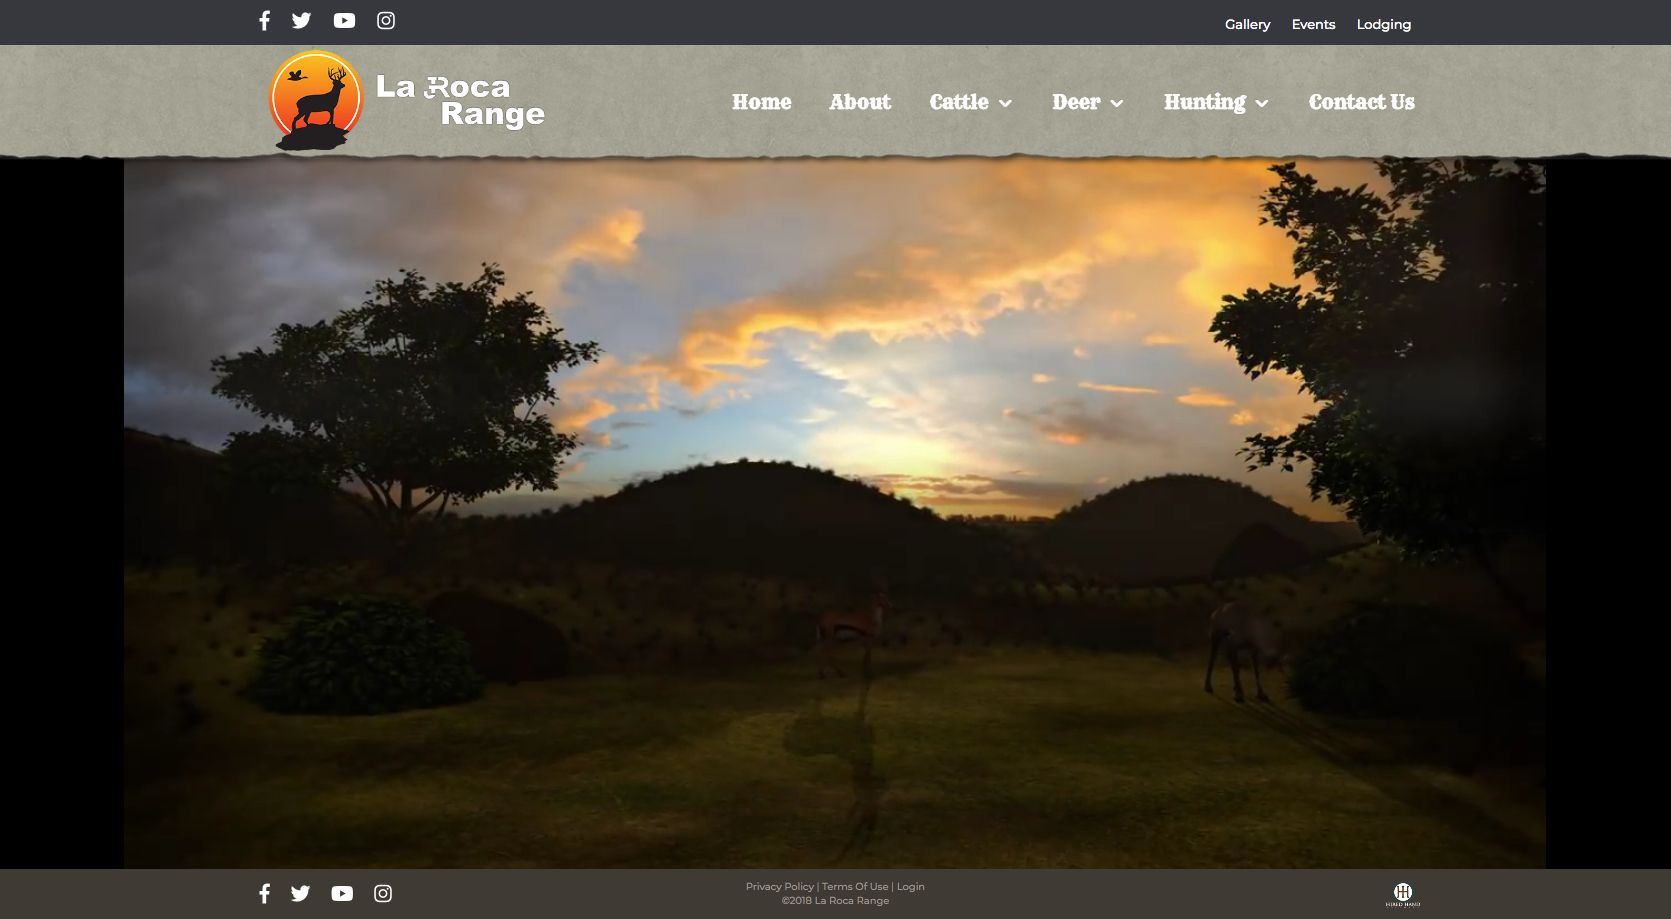 Websitelaunch Alert Breederwebsite The New Hiredhandpowered Website For La Roca Range Is Now Live And Ready To View Create Website Cattle Whitetail Deer